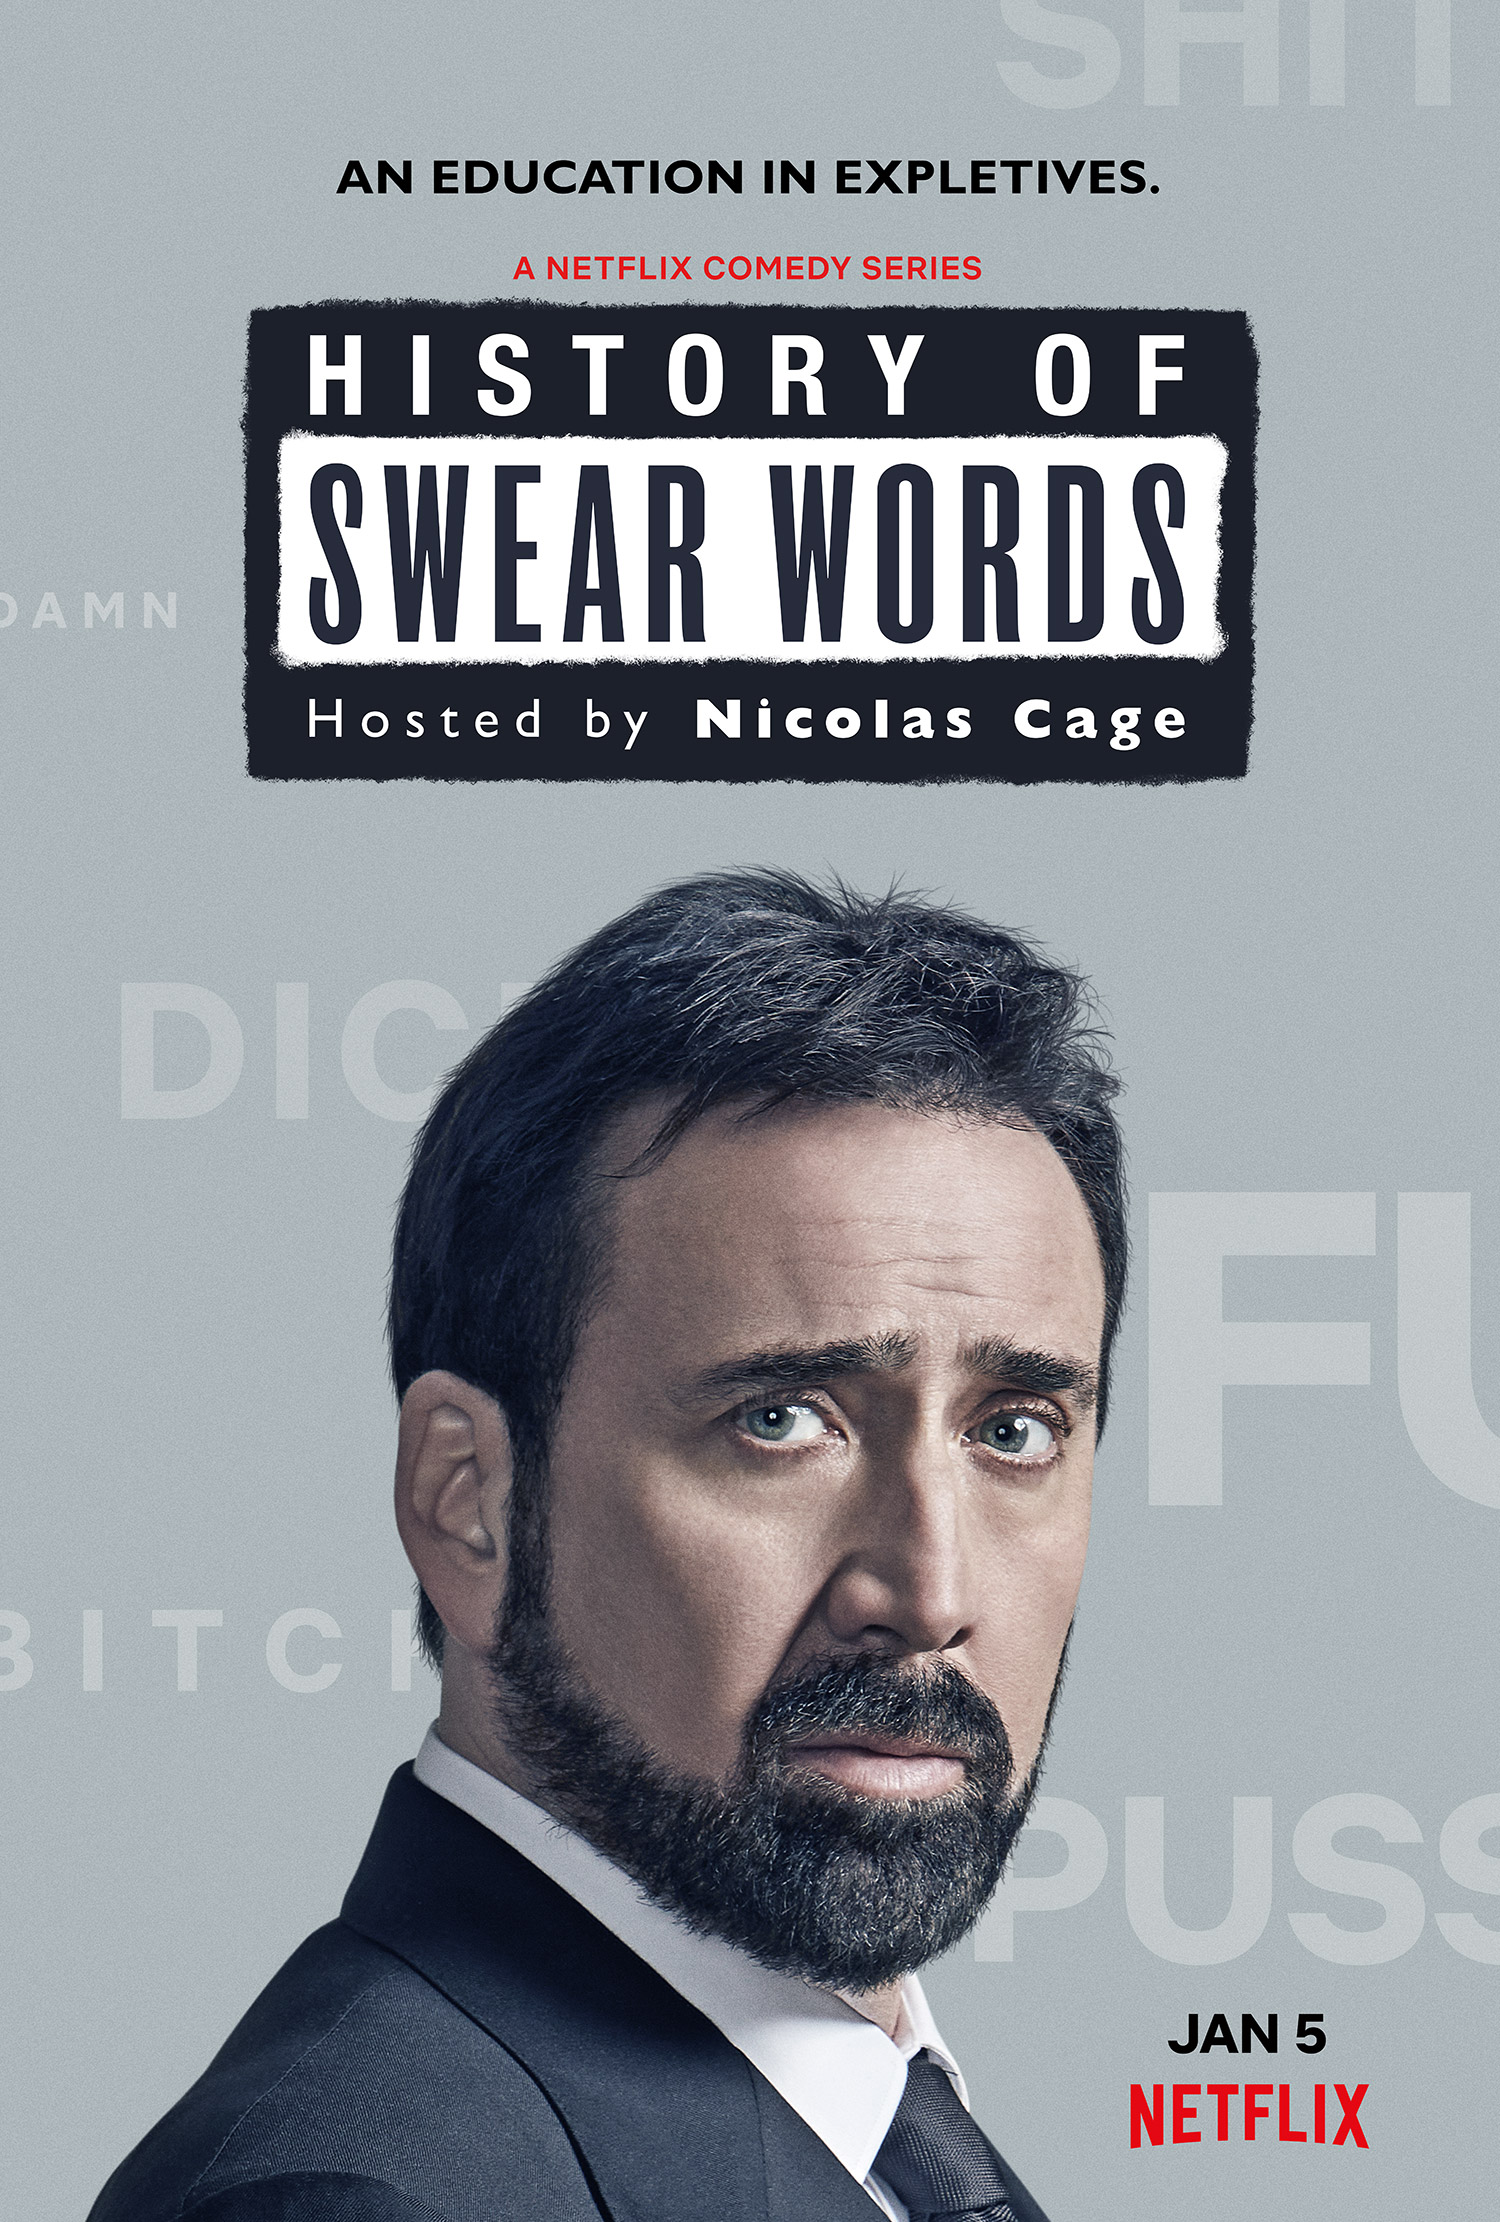 Netflix Comedy Series: History Of Swear Words Starring Nicolas Cage